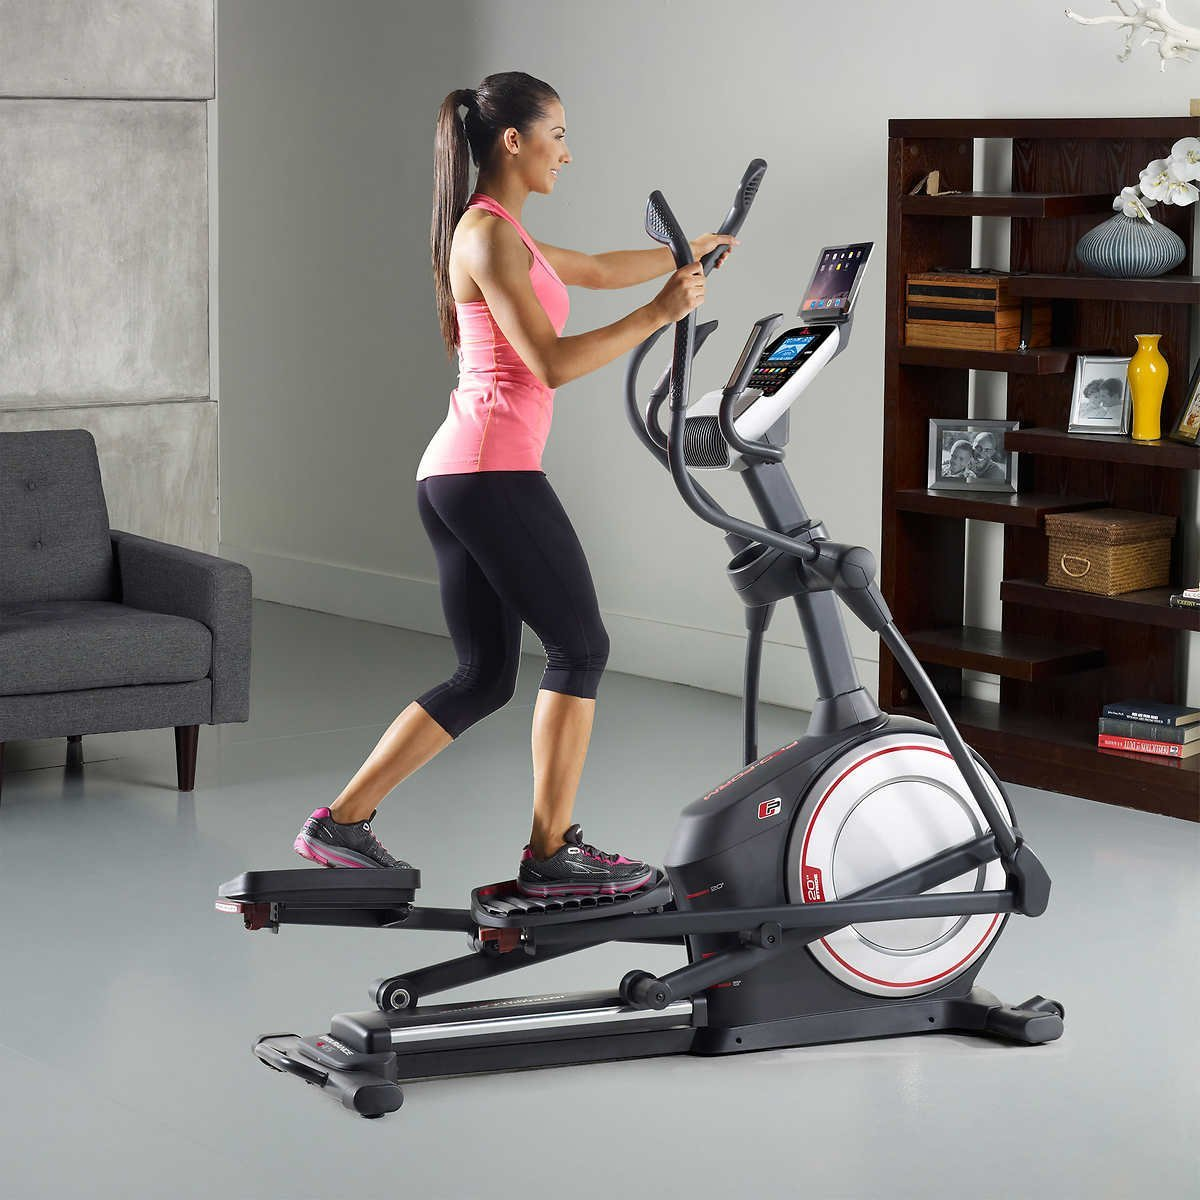 Explore butt machines for exercise